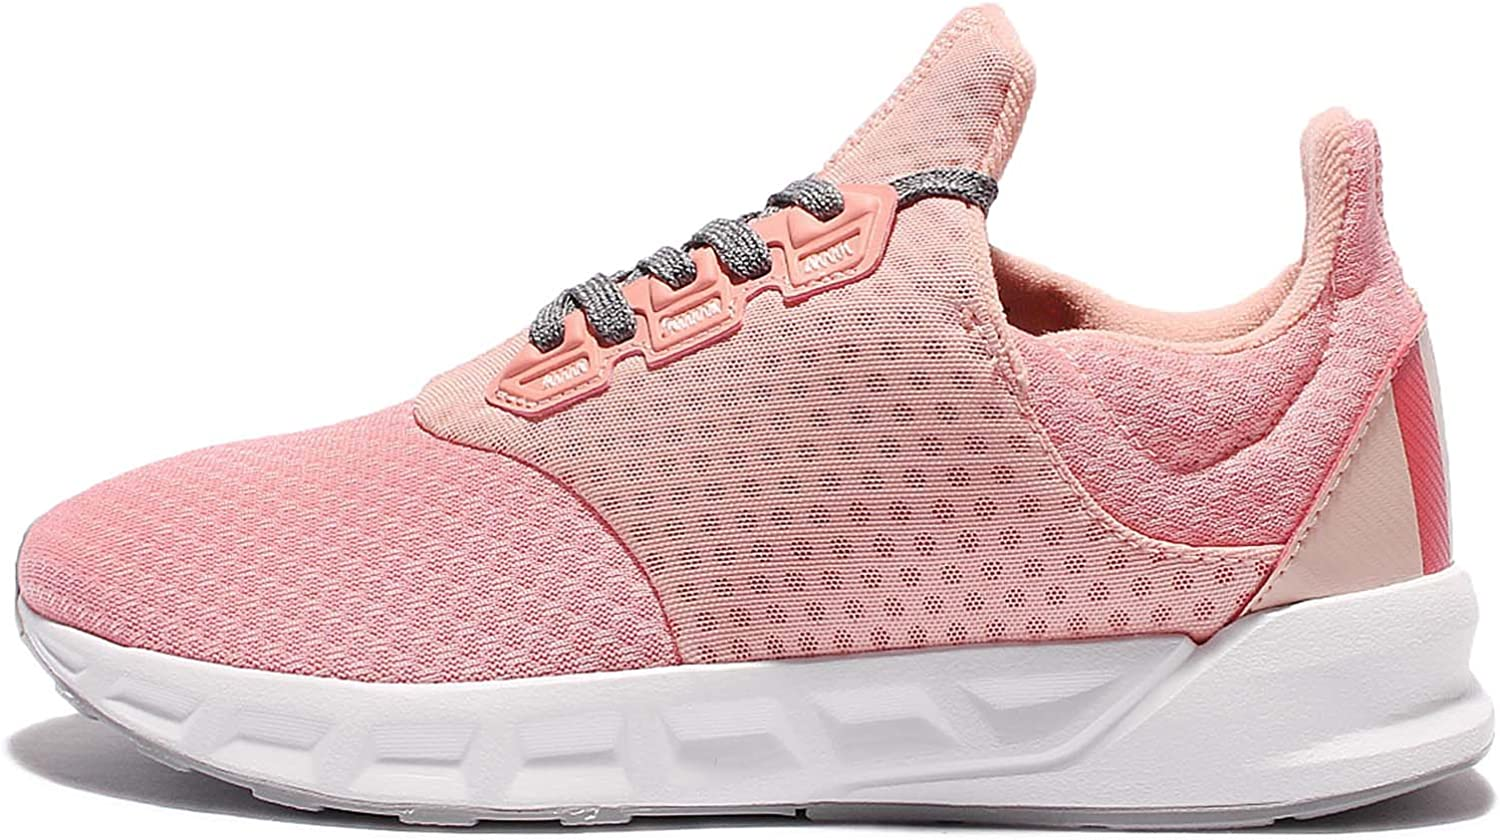 mejor sitio Venta barata venta de liquidación Amazon.com: adidas Women's FALCON ELITE 5 W, PINK/WHITE, 7.5 US: Shoes